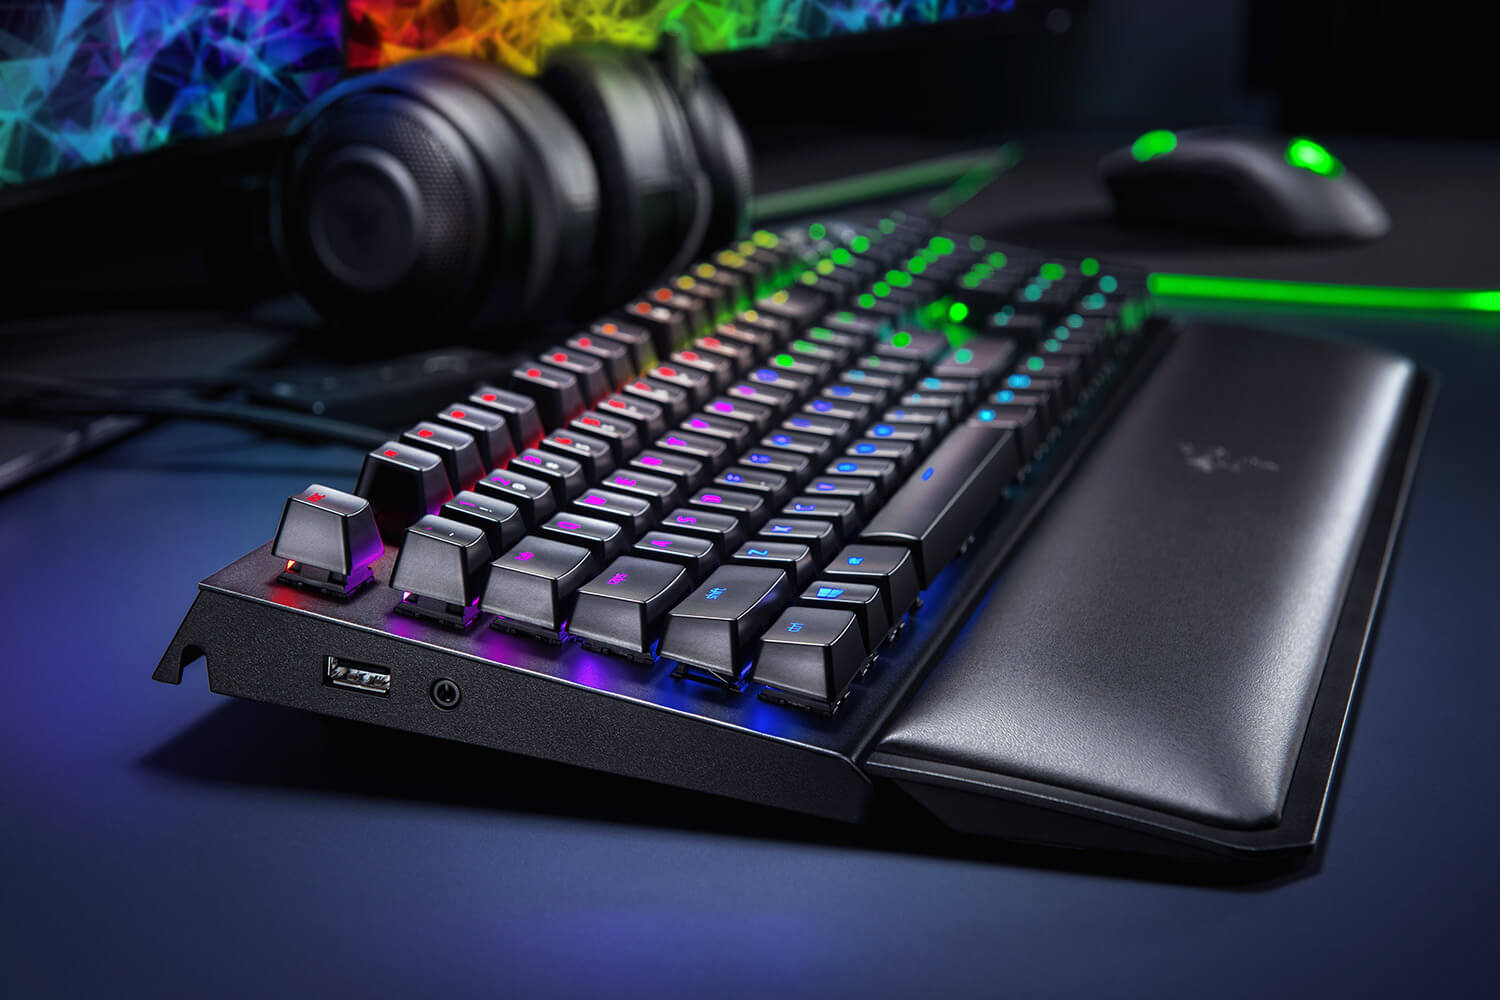 Official image of the Razer BlackWidow elite